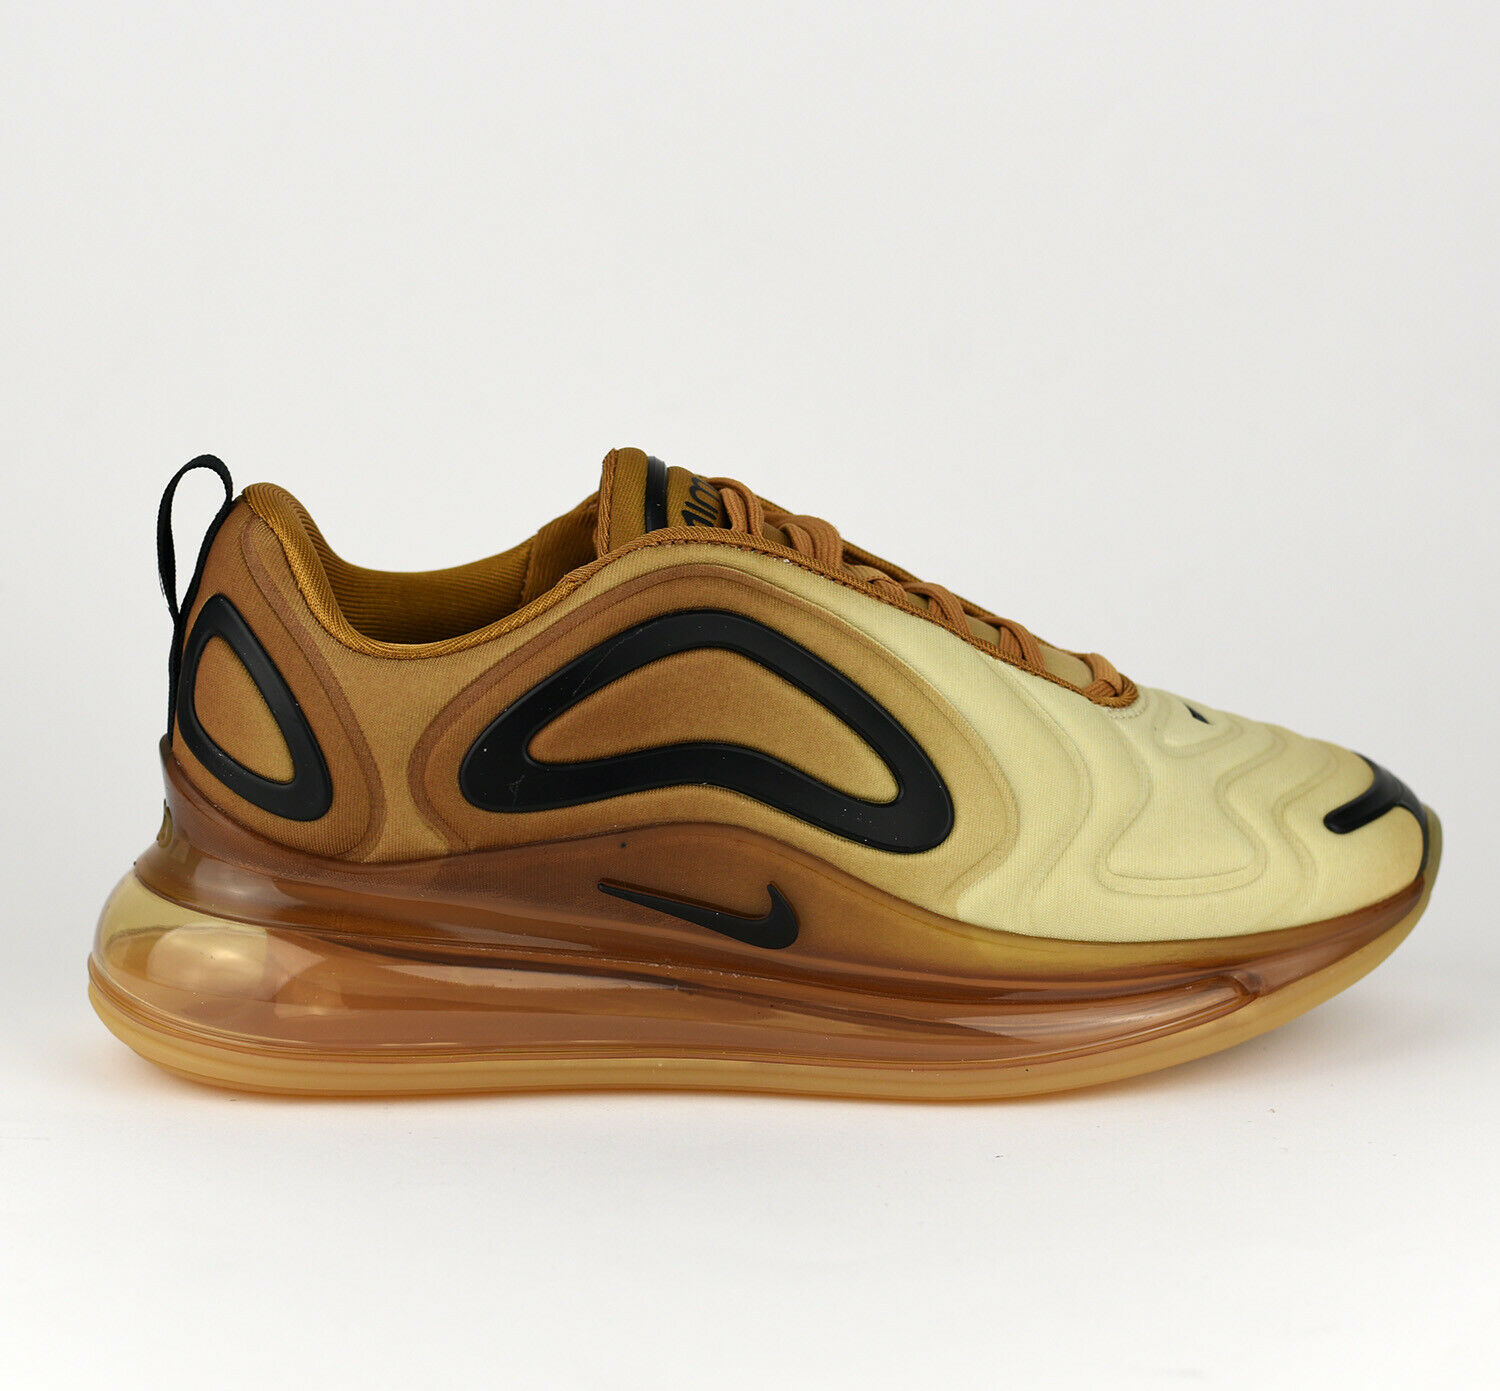 Nike WMNS Air Max Max Max 720 Women Lifestyle Sneakers New Wheat Black gold AR9293-700 923e8c